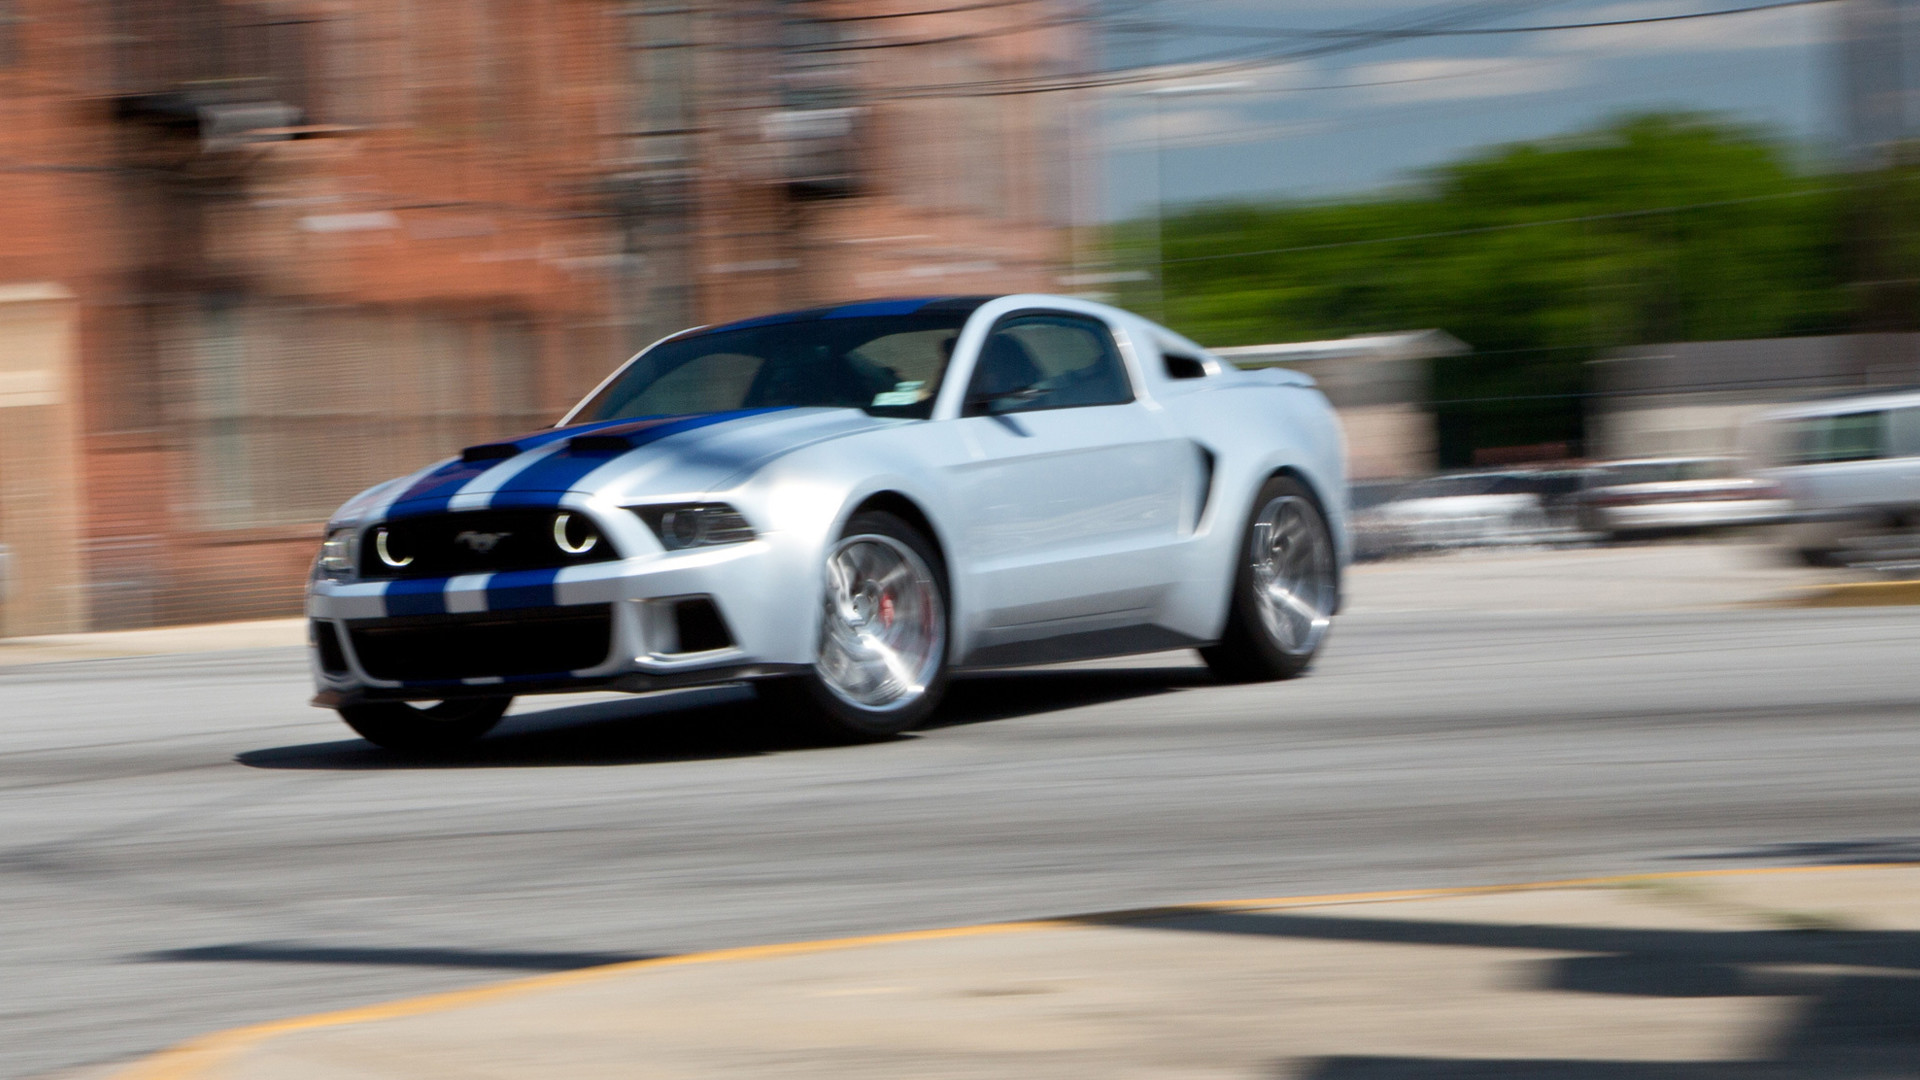 Shelby Mustang Wallpaper 75 Images